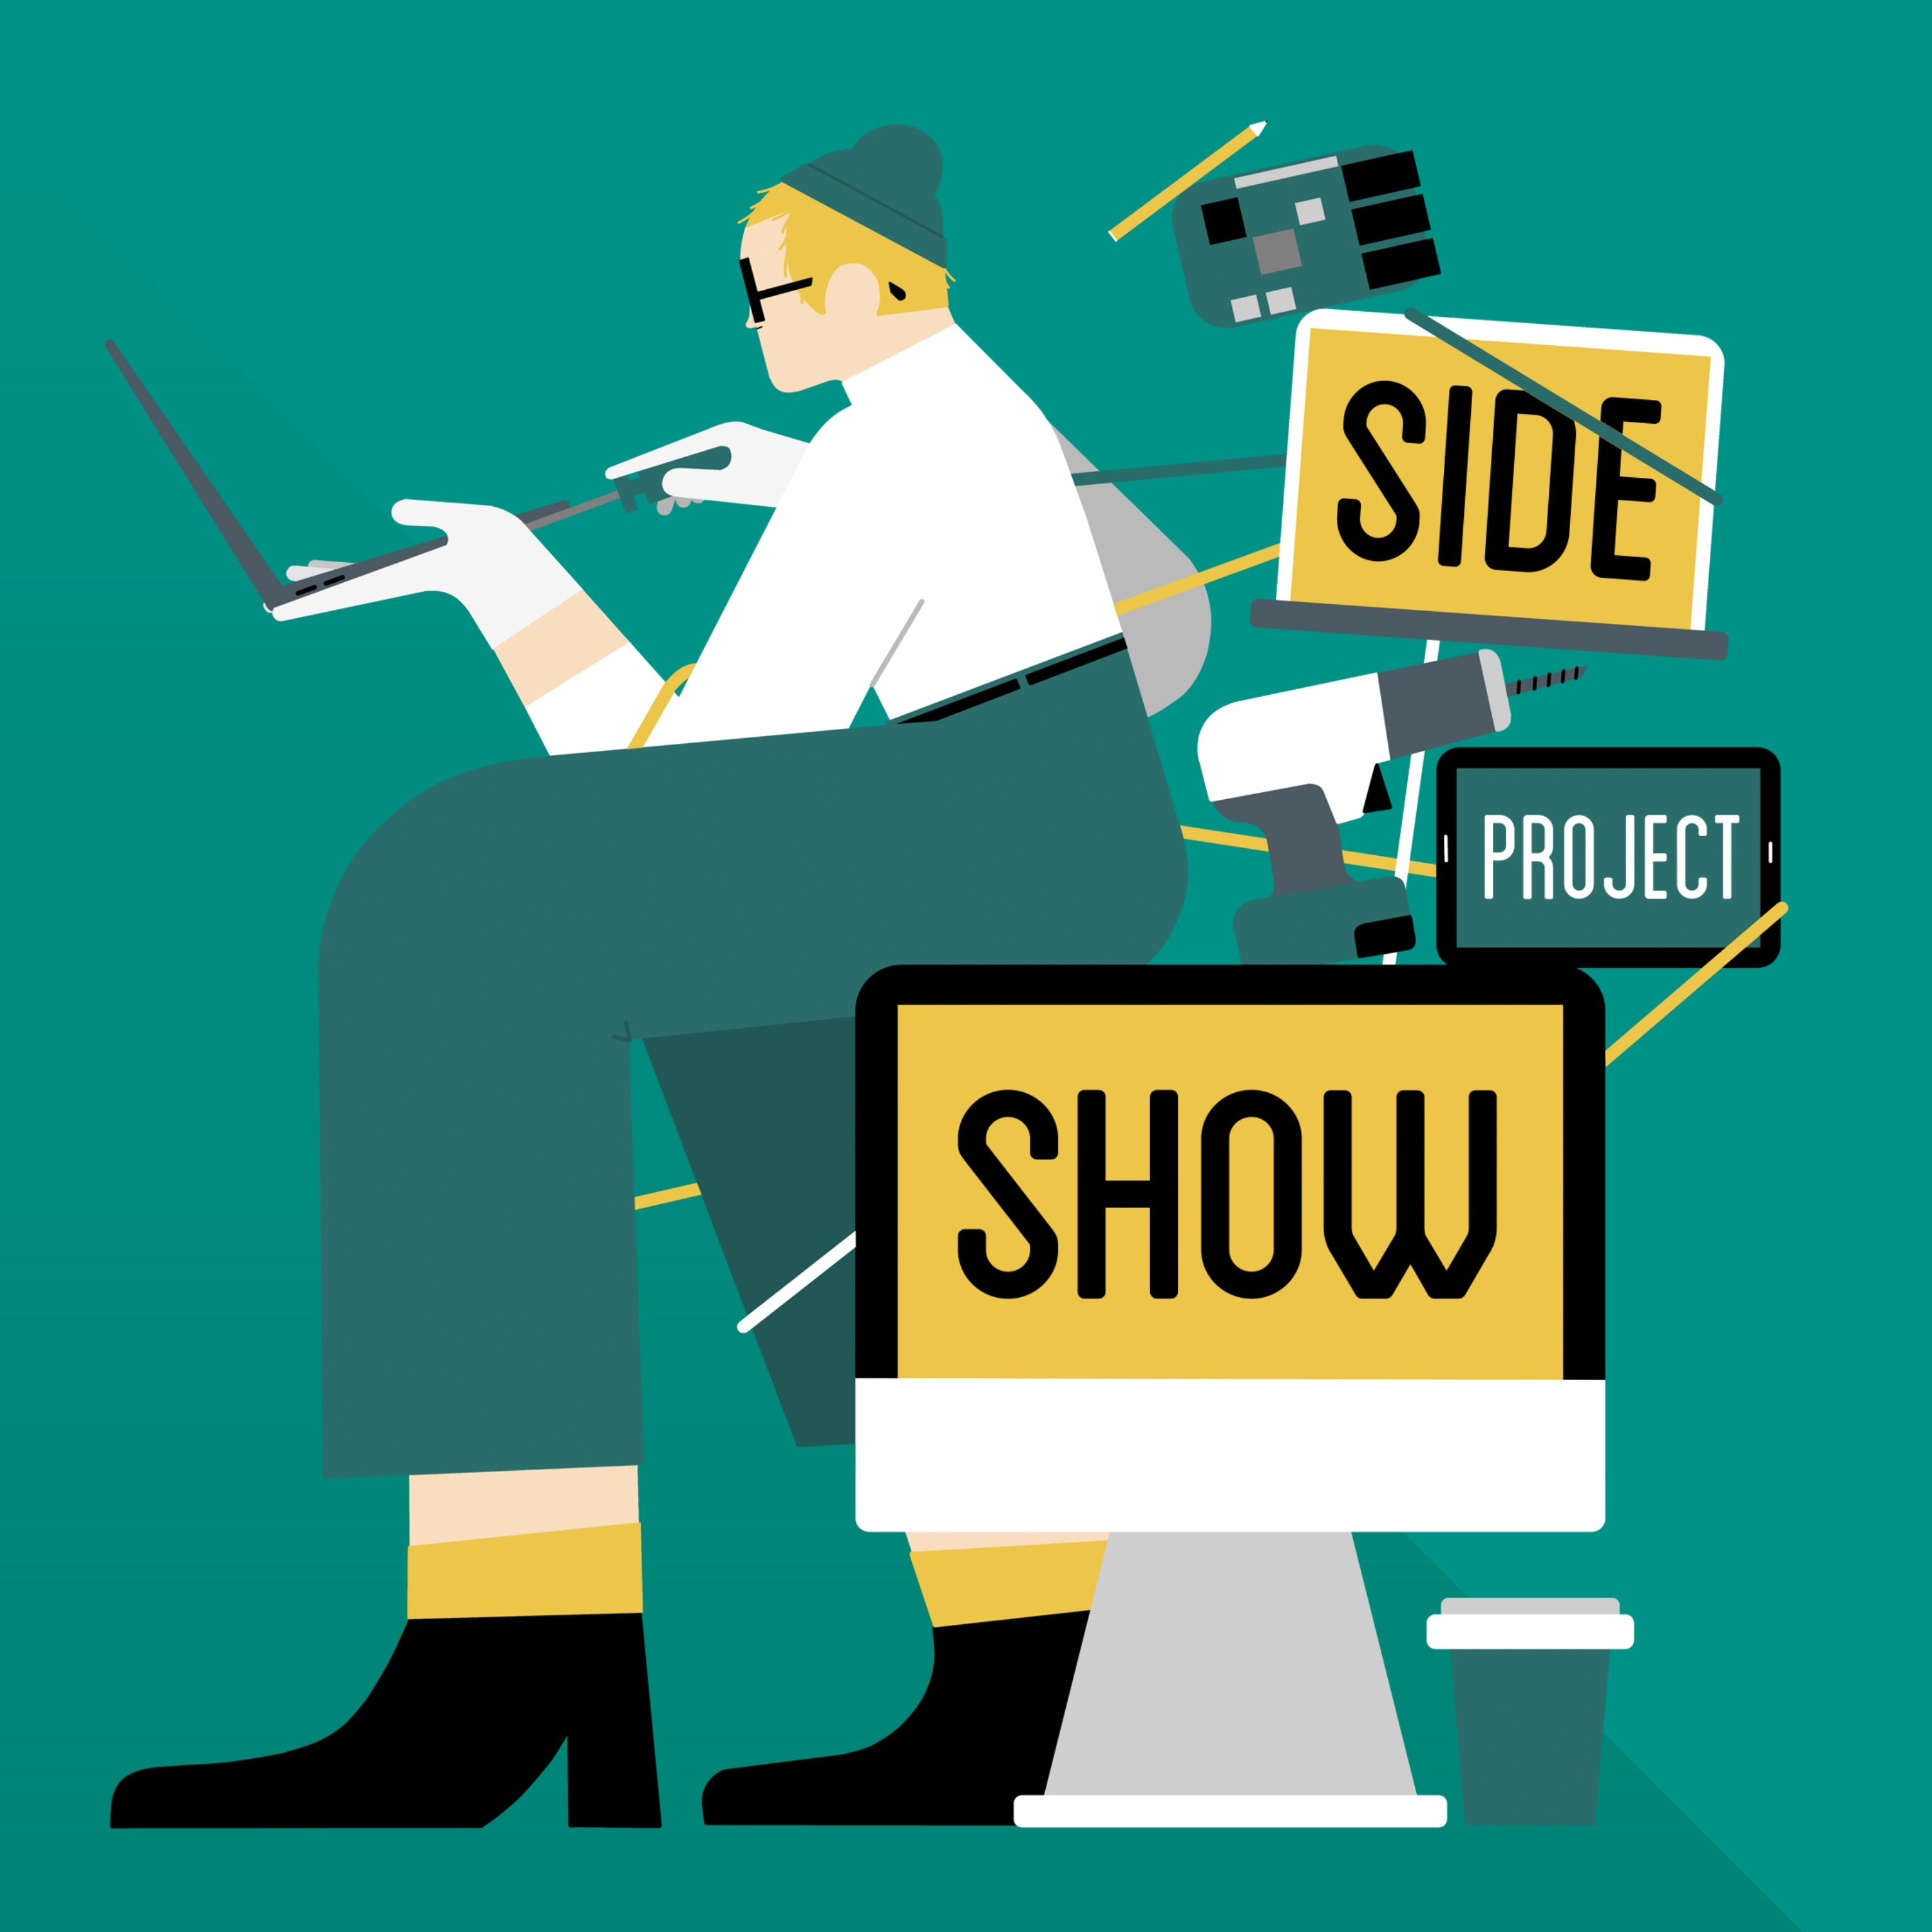 Side Project Show logo